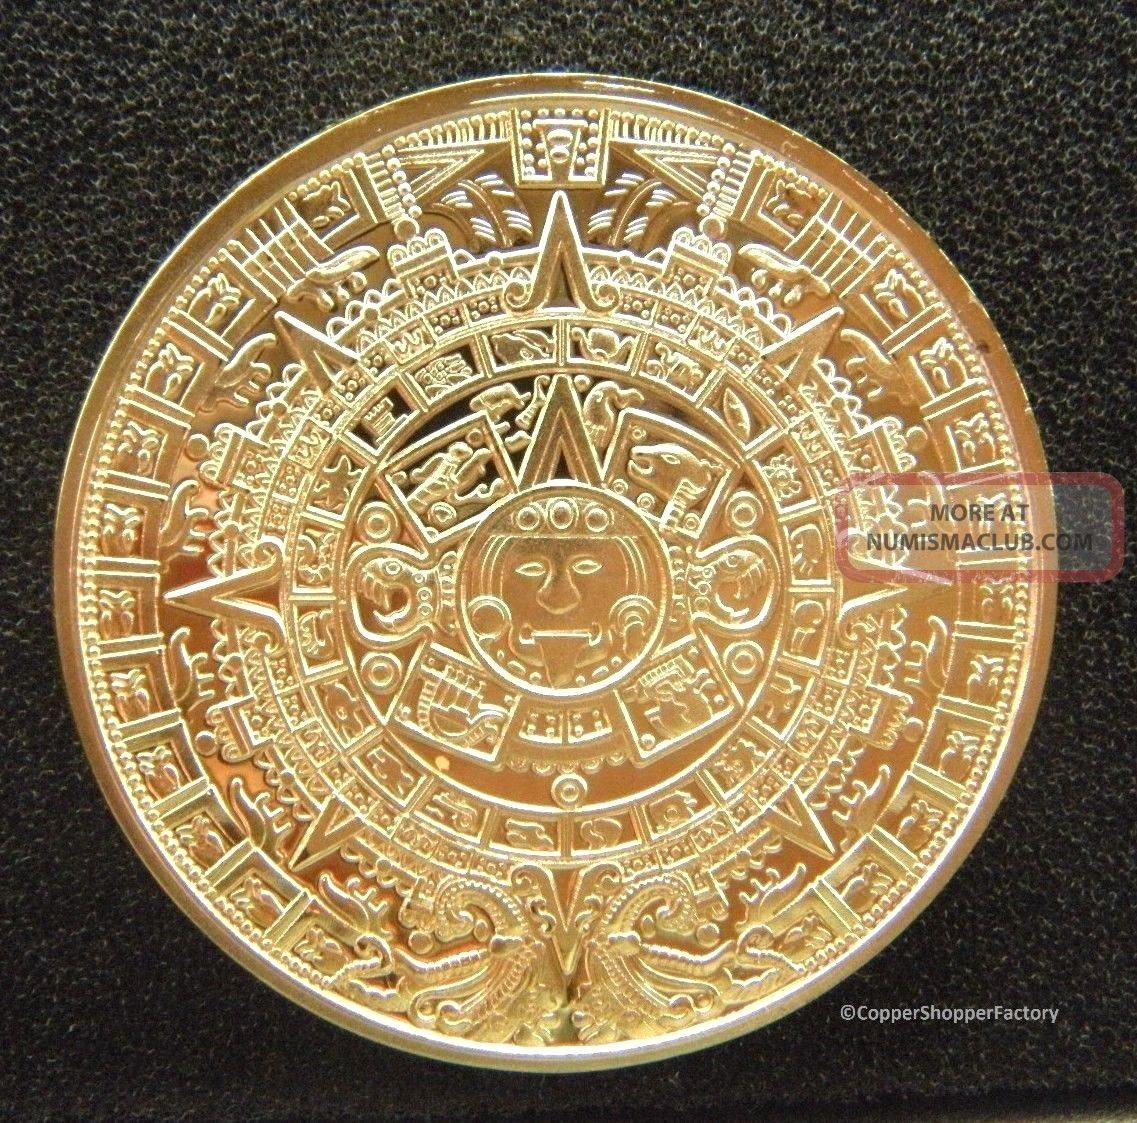 Gold Coin 1 Oz Mexican Aztec 100 Mills 999 24k 1 Ounce